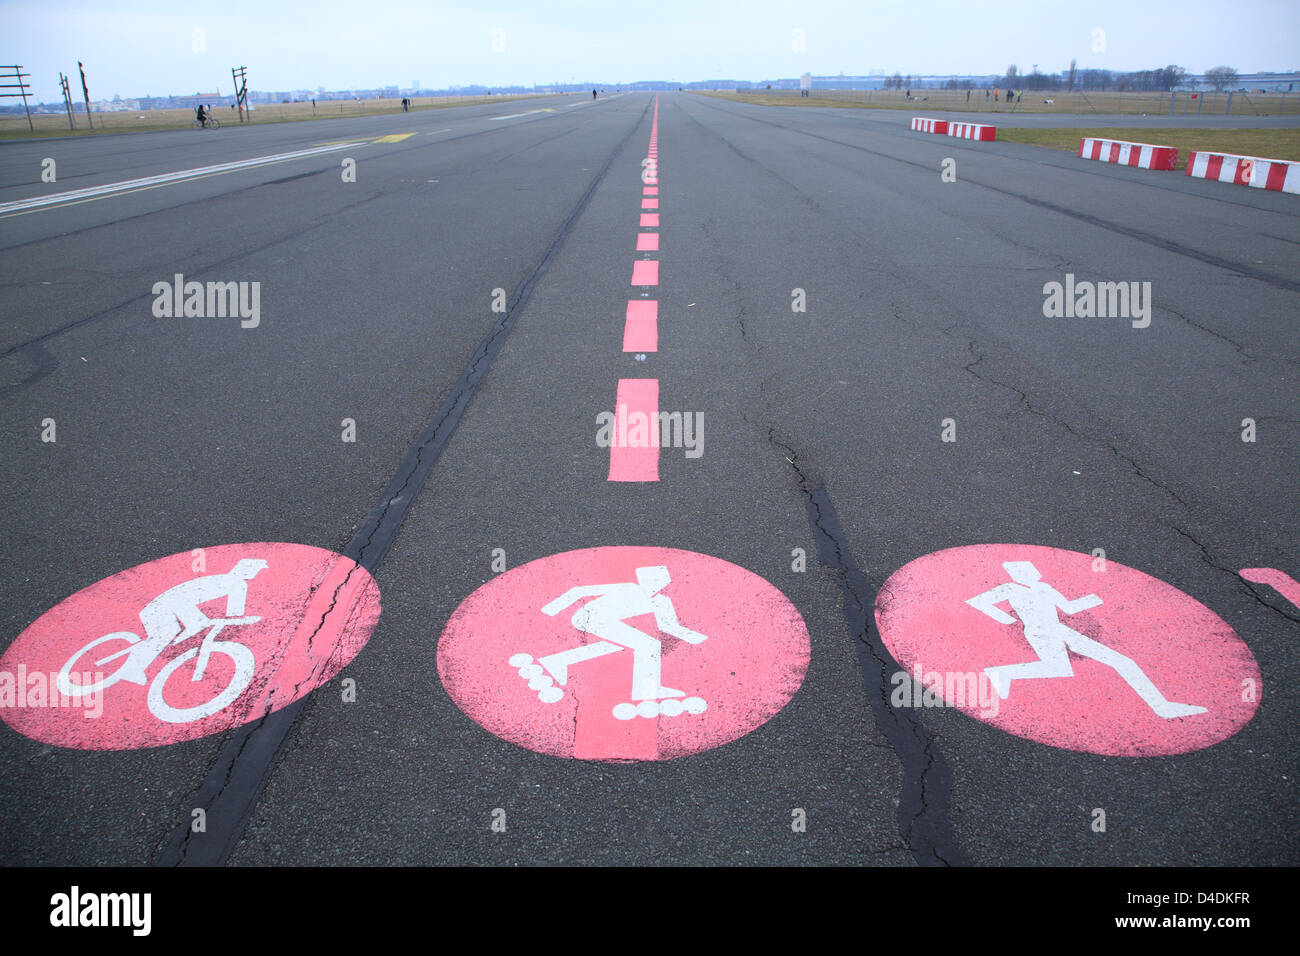 Former Tempelhof Airport, Berlin, Germany,  former runway, today converted to a public park - Stock Image